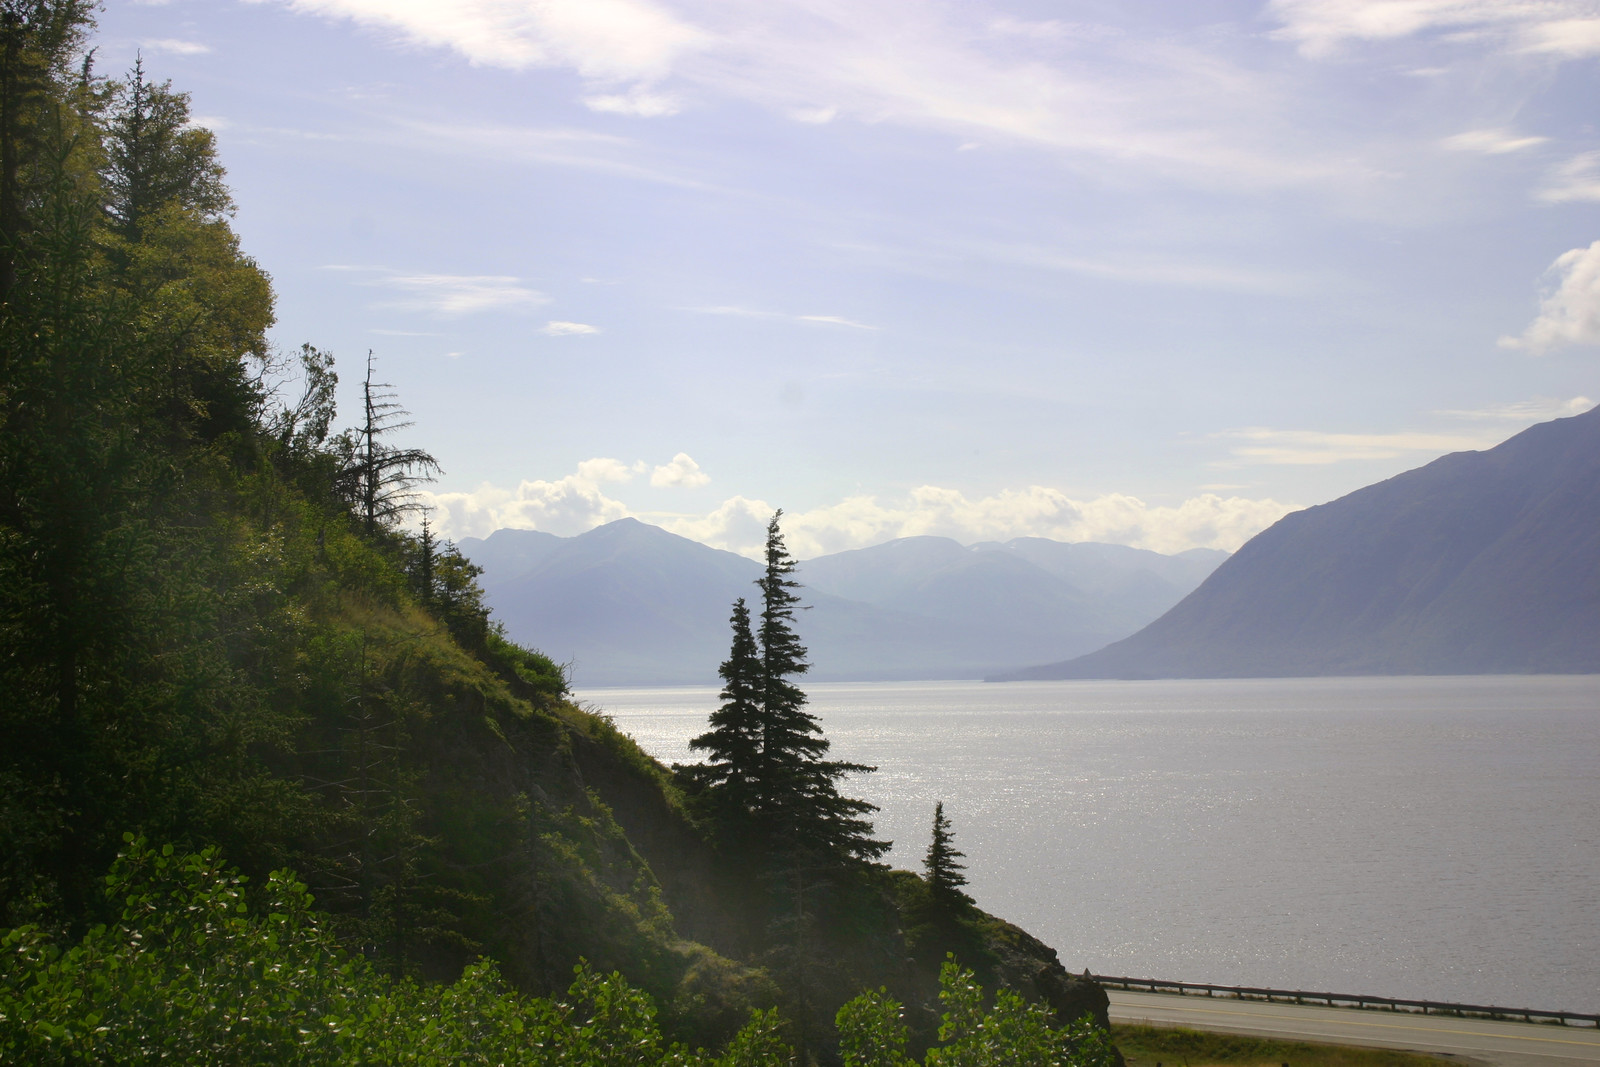 Sunny day looking over the bay in Kenai hill covered in green with trees and road at the base of the hill and mountains framing the other side of the bay